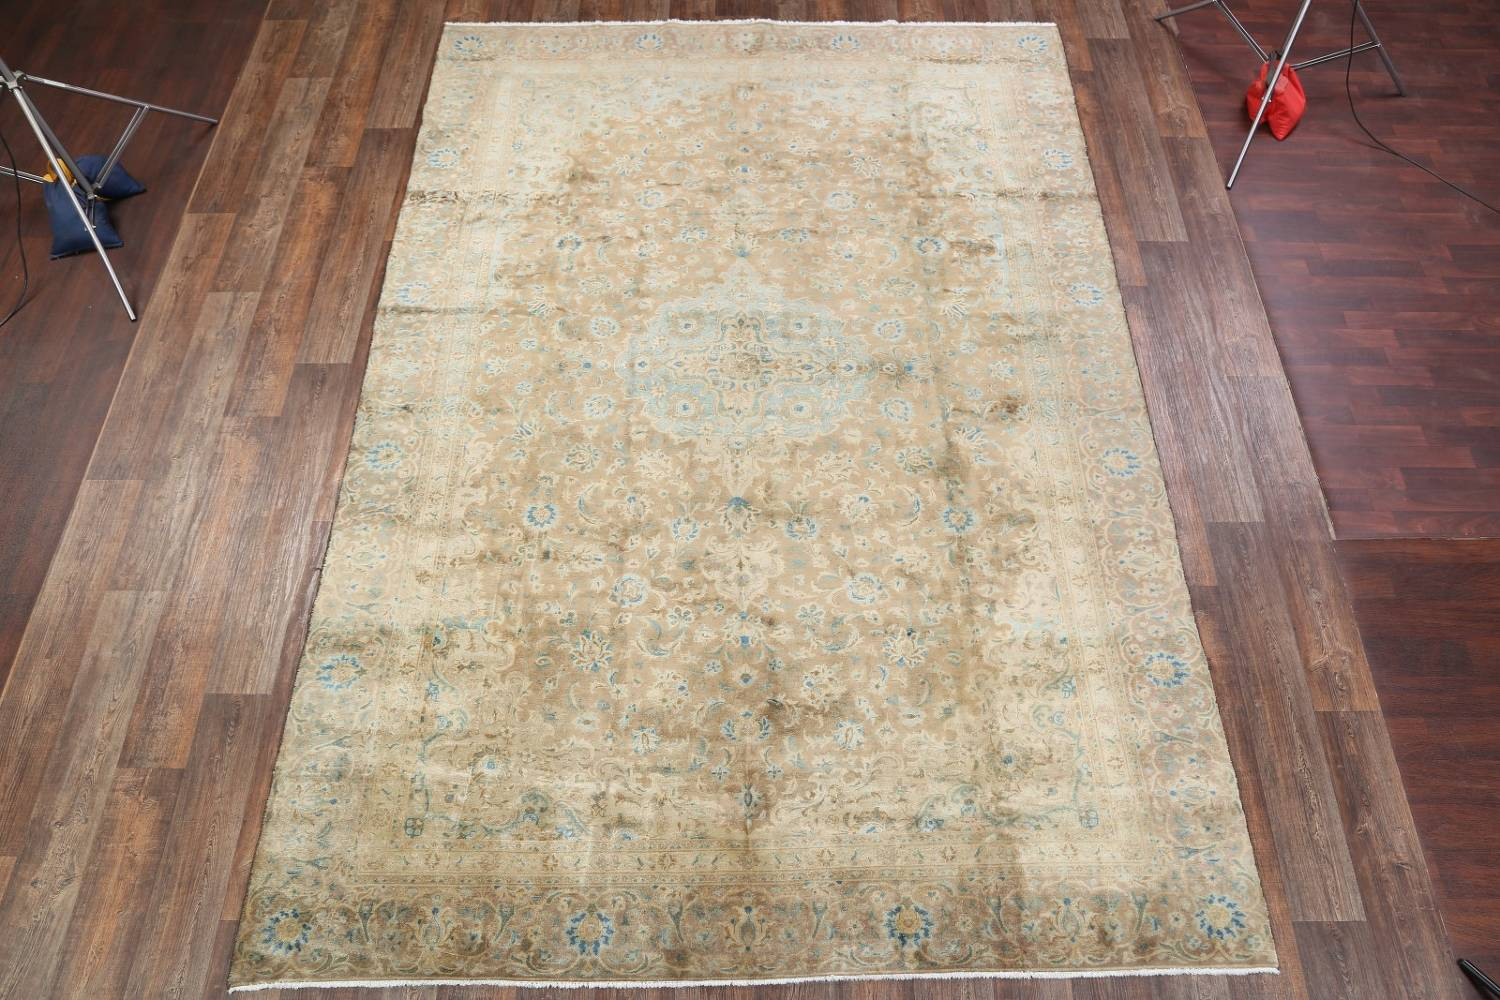 Antique Muted Distressed Kashan Persian Area Rug 9x13 image 2